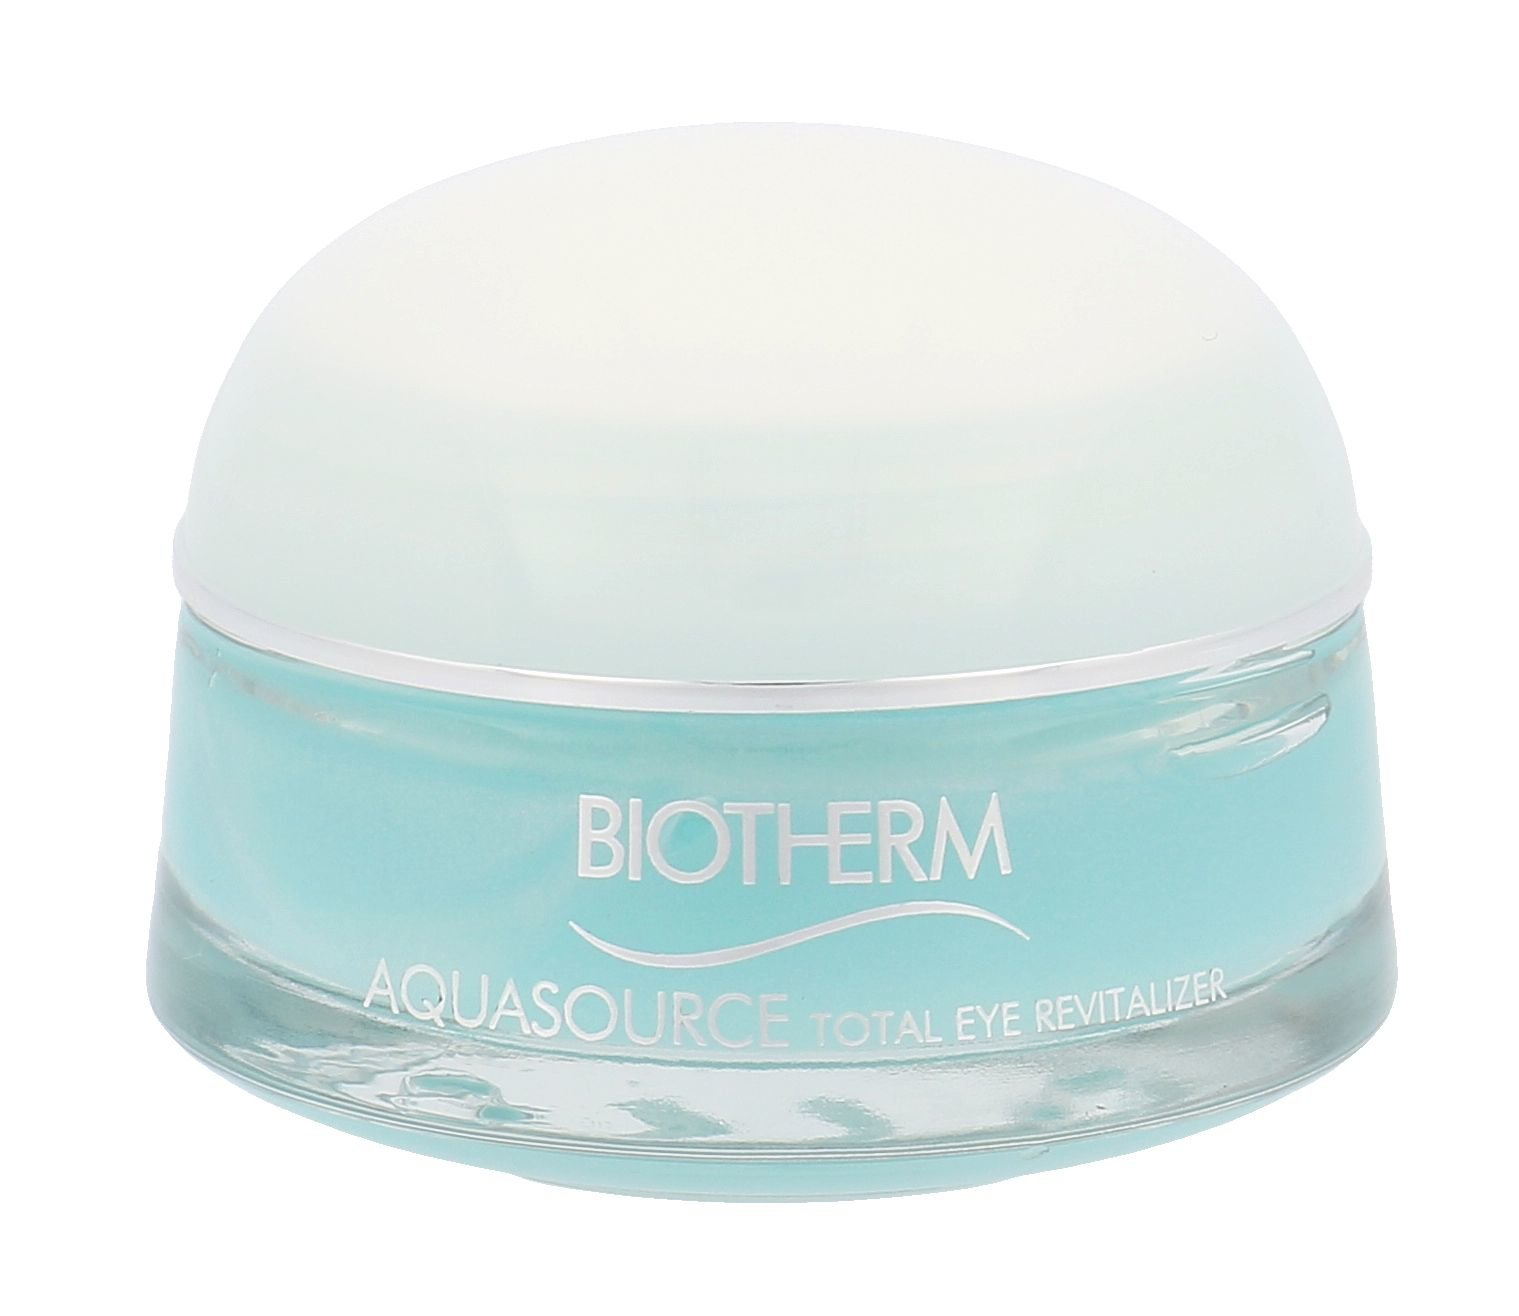 Biotherm Aquasource Cosmetic 15ml  Total Eye Revitalizer